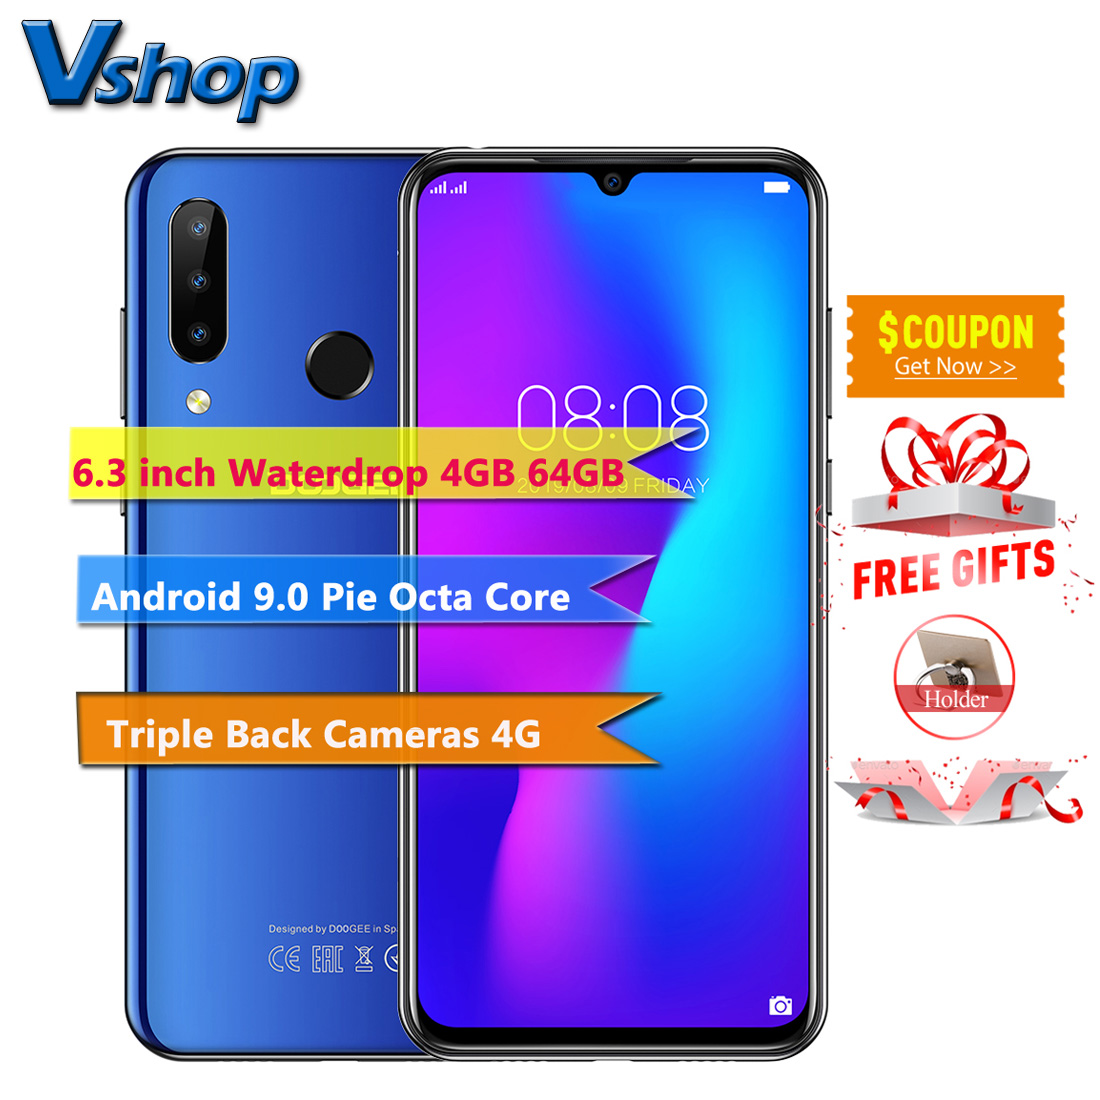 DOOGEE N20 4GB+64GB 6.3inch Waterdrop Screen 3 Back Camera Android 9.0 Pie Octa Core Fingerprint ID 4350mAh 4G LTE Smartphone